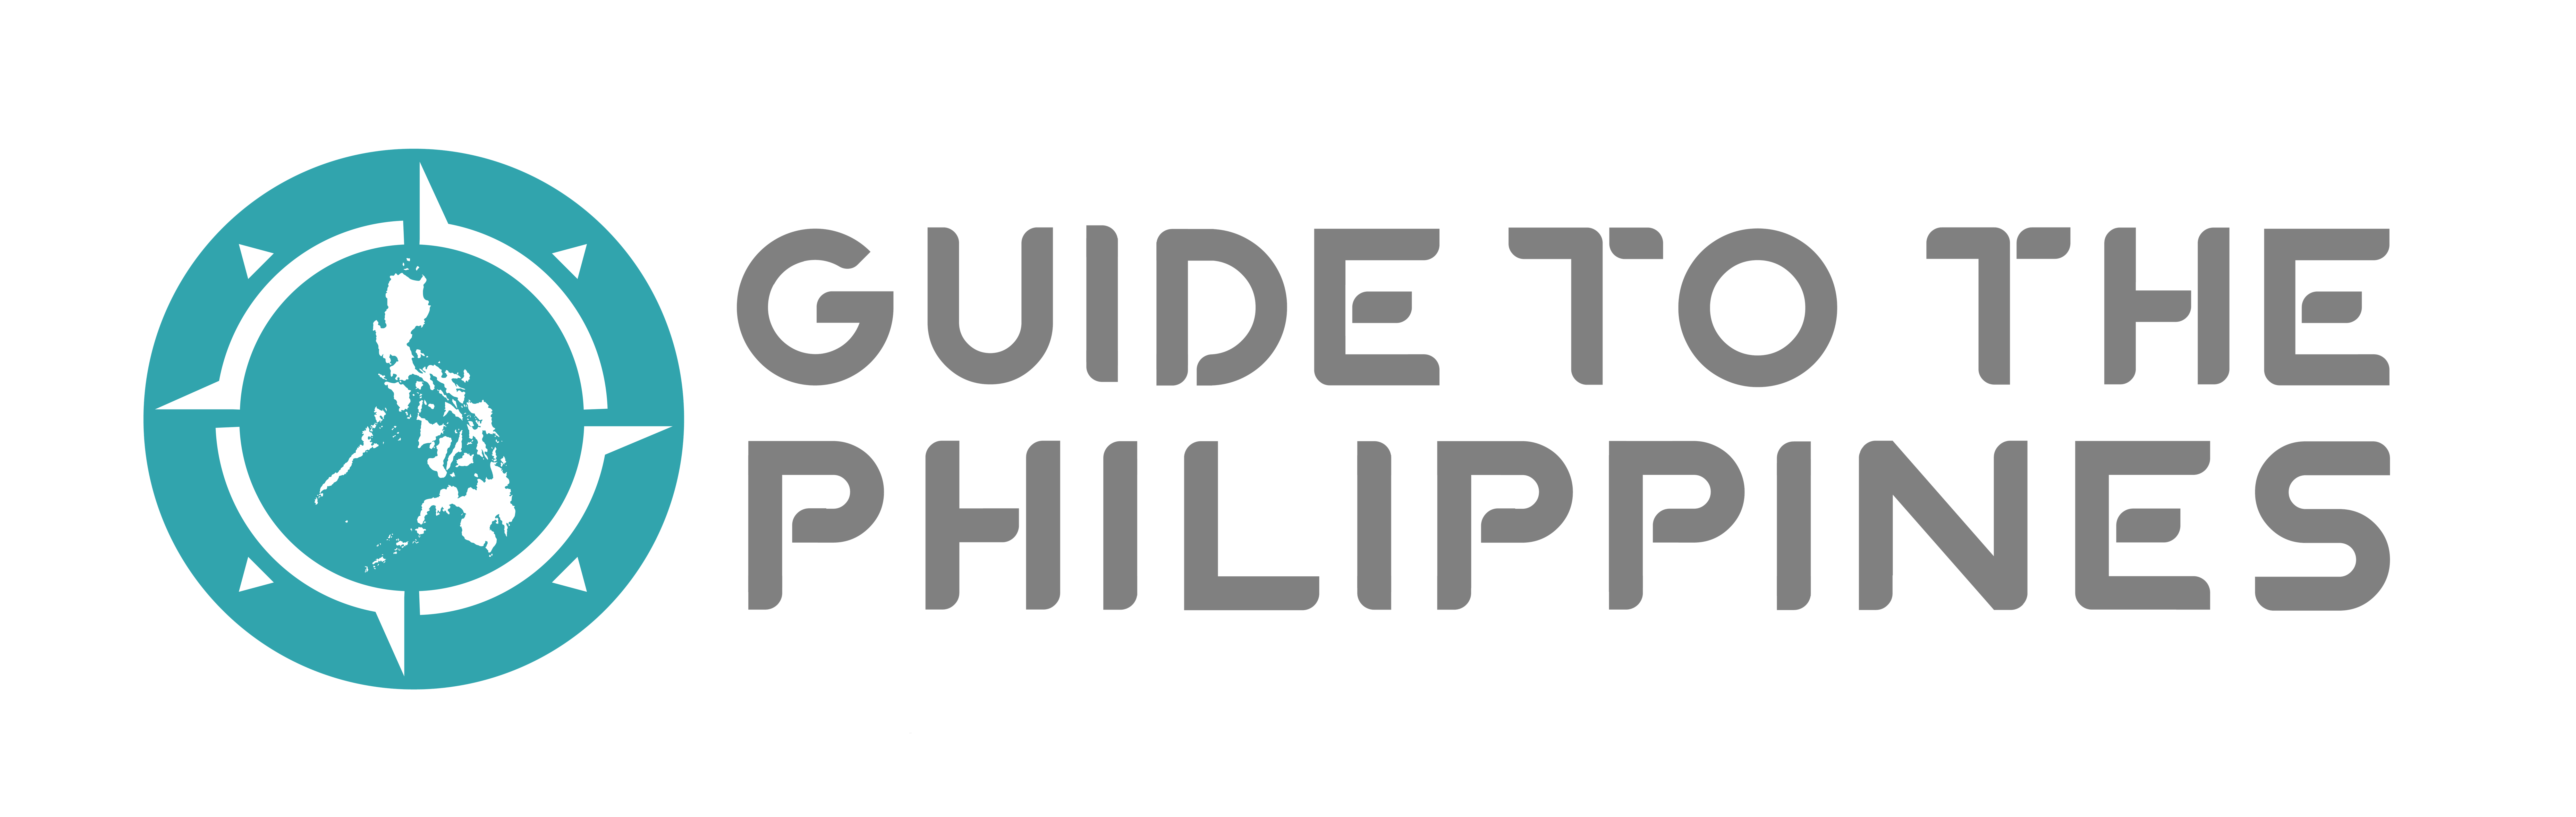 Guide to the Philippines